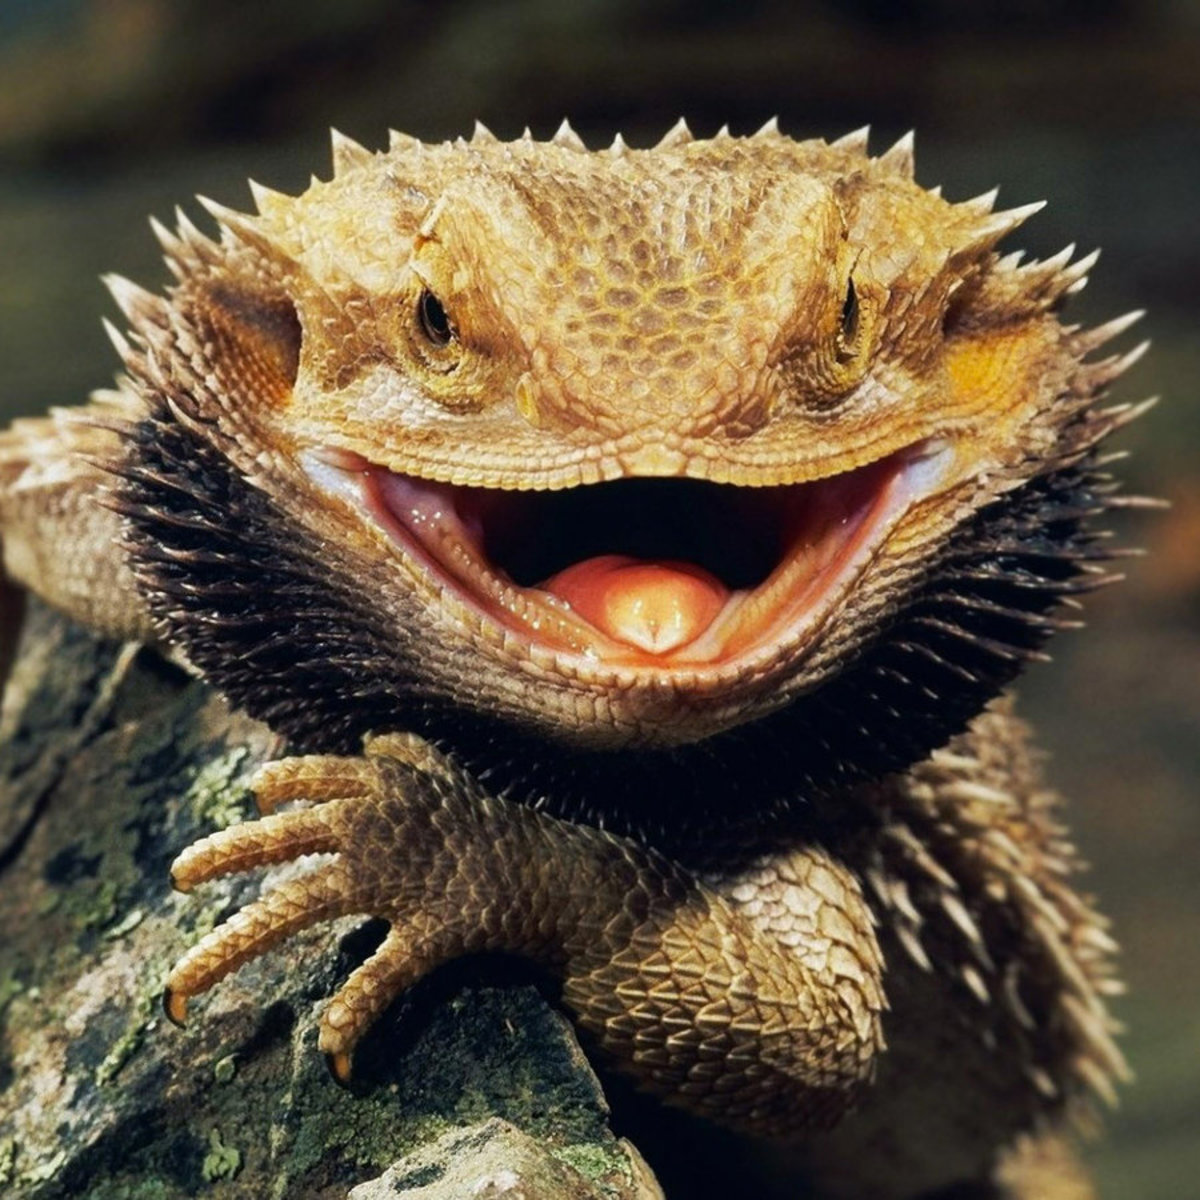 Notice the spiked appearance of a bearded dragon's scales.